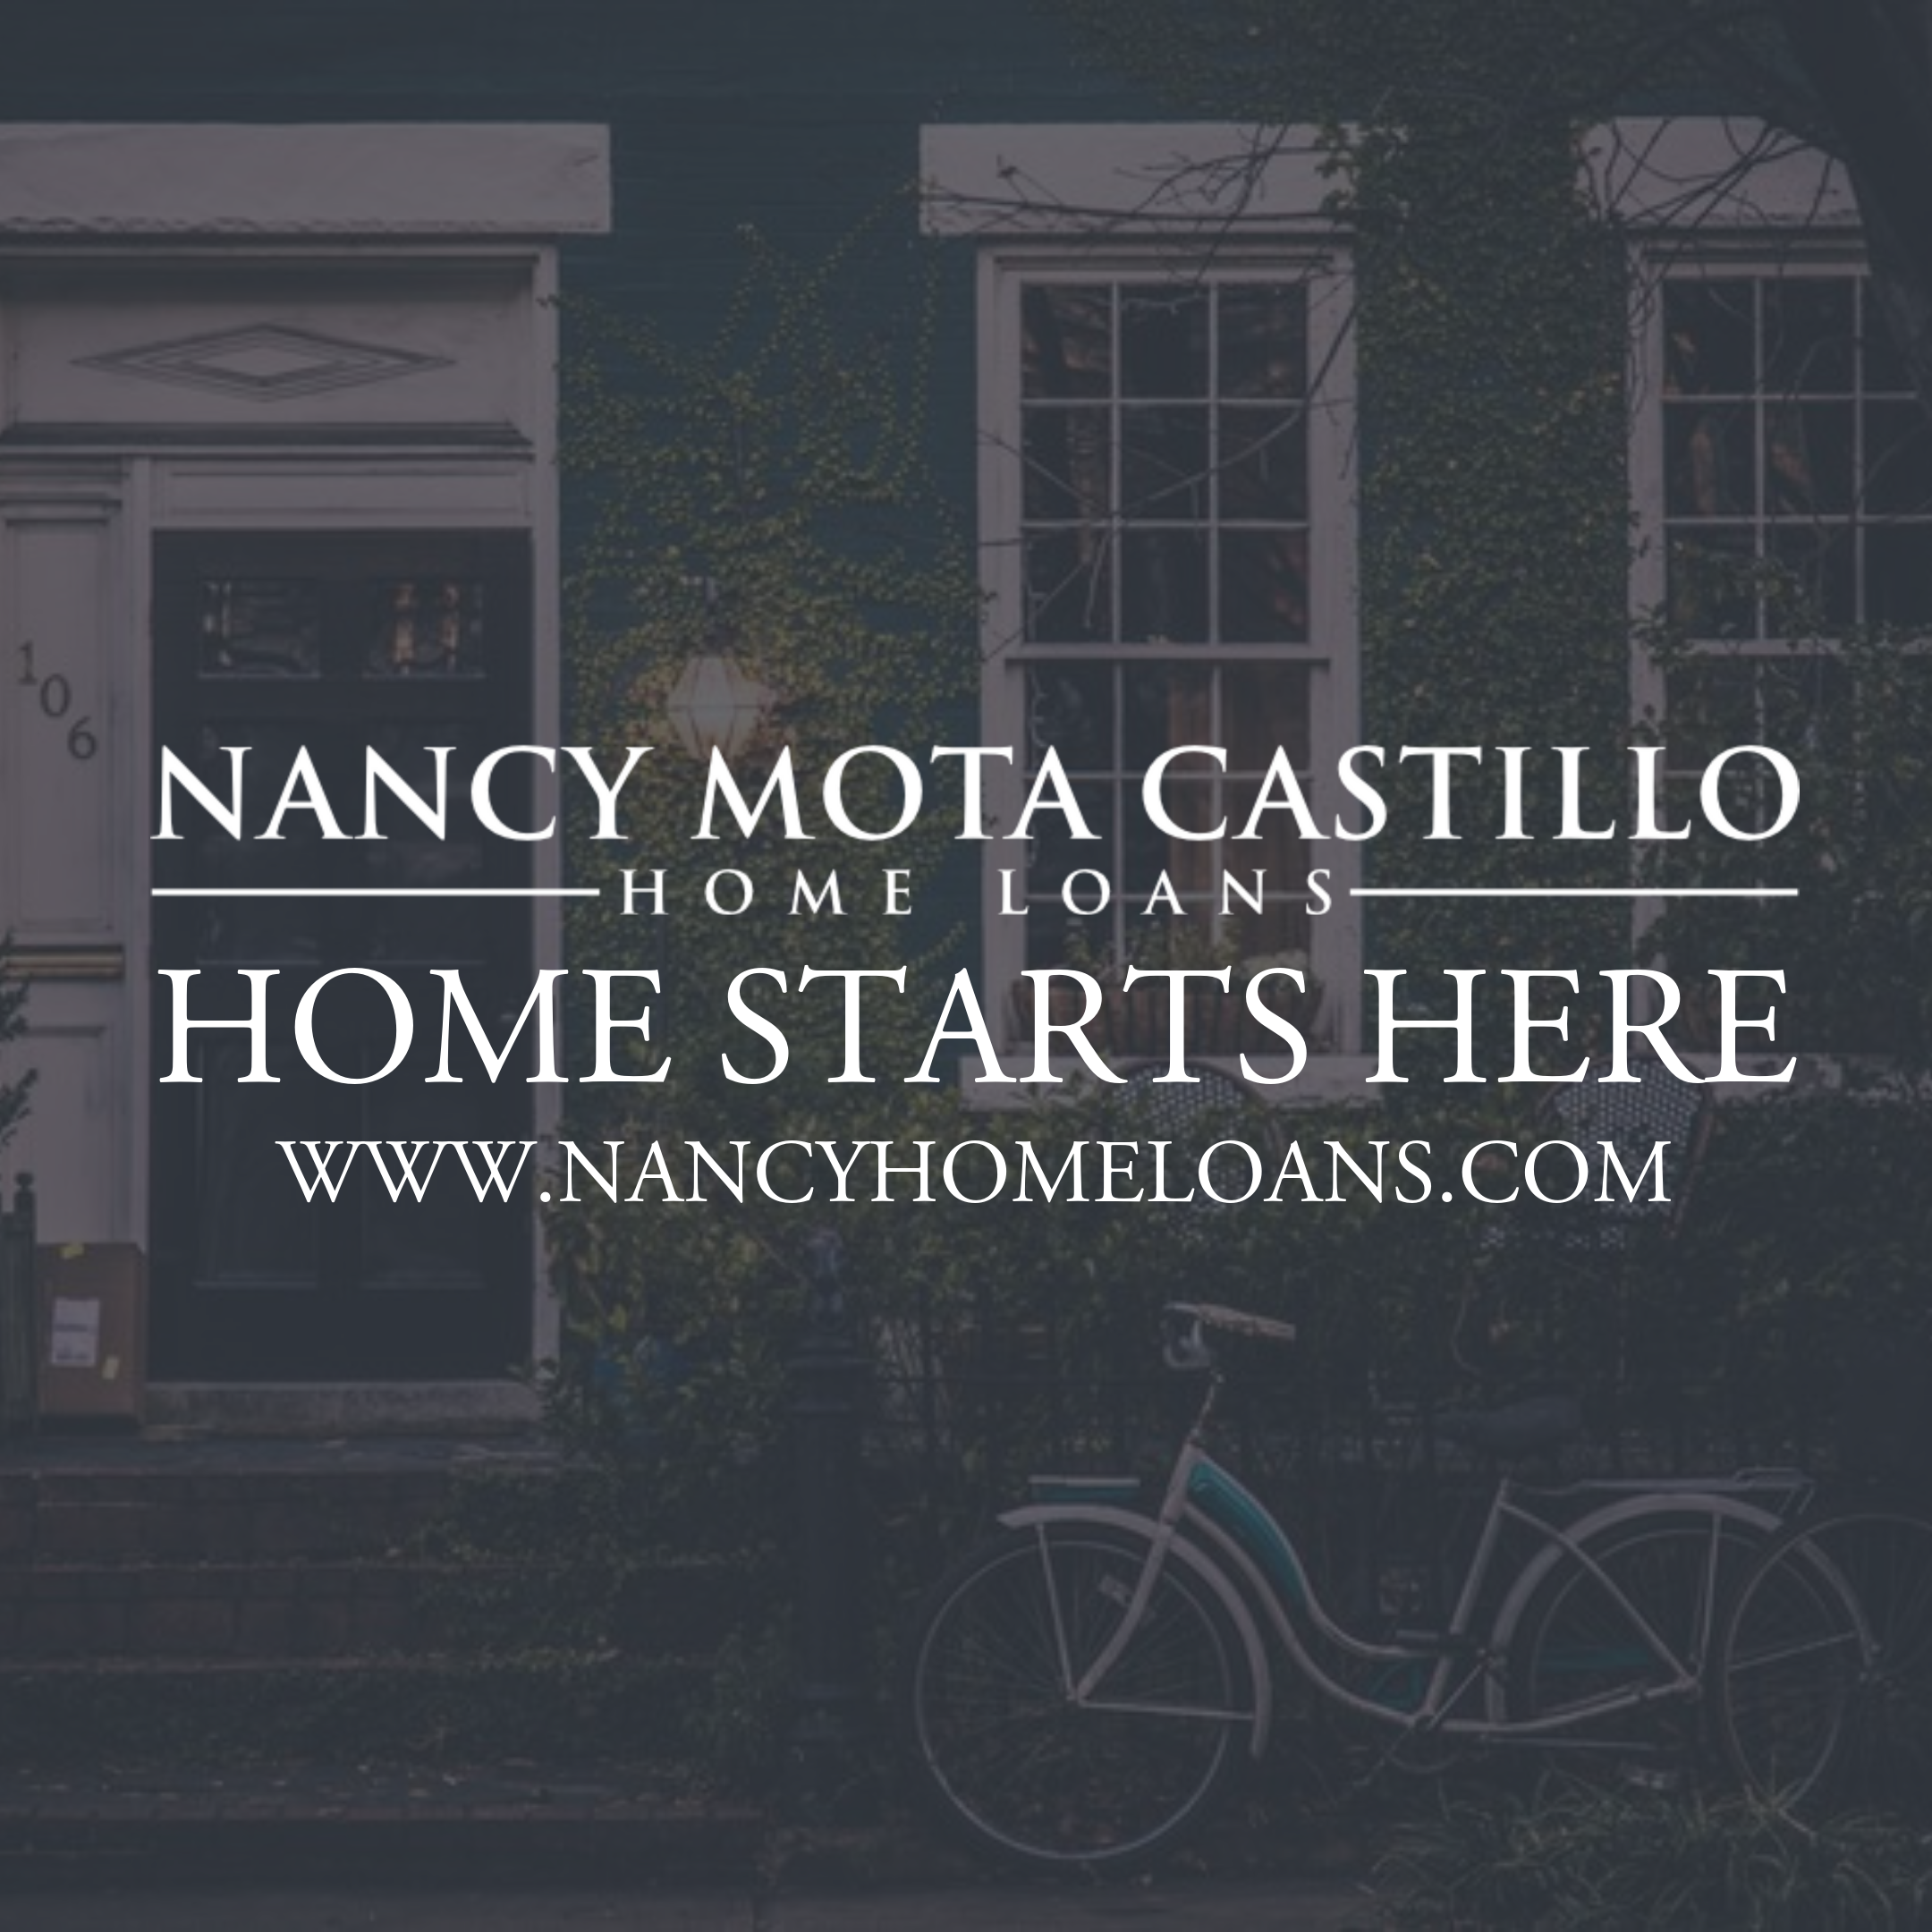 Nancy Home Loans - Kings Mortgage Services, Inc. NMLS #284902